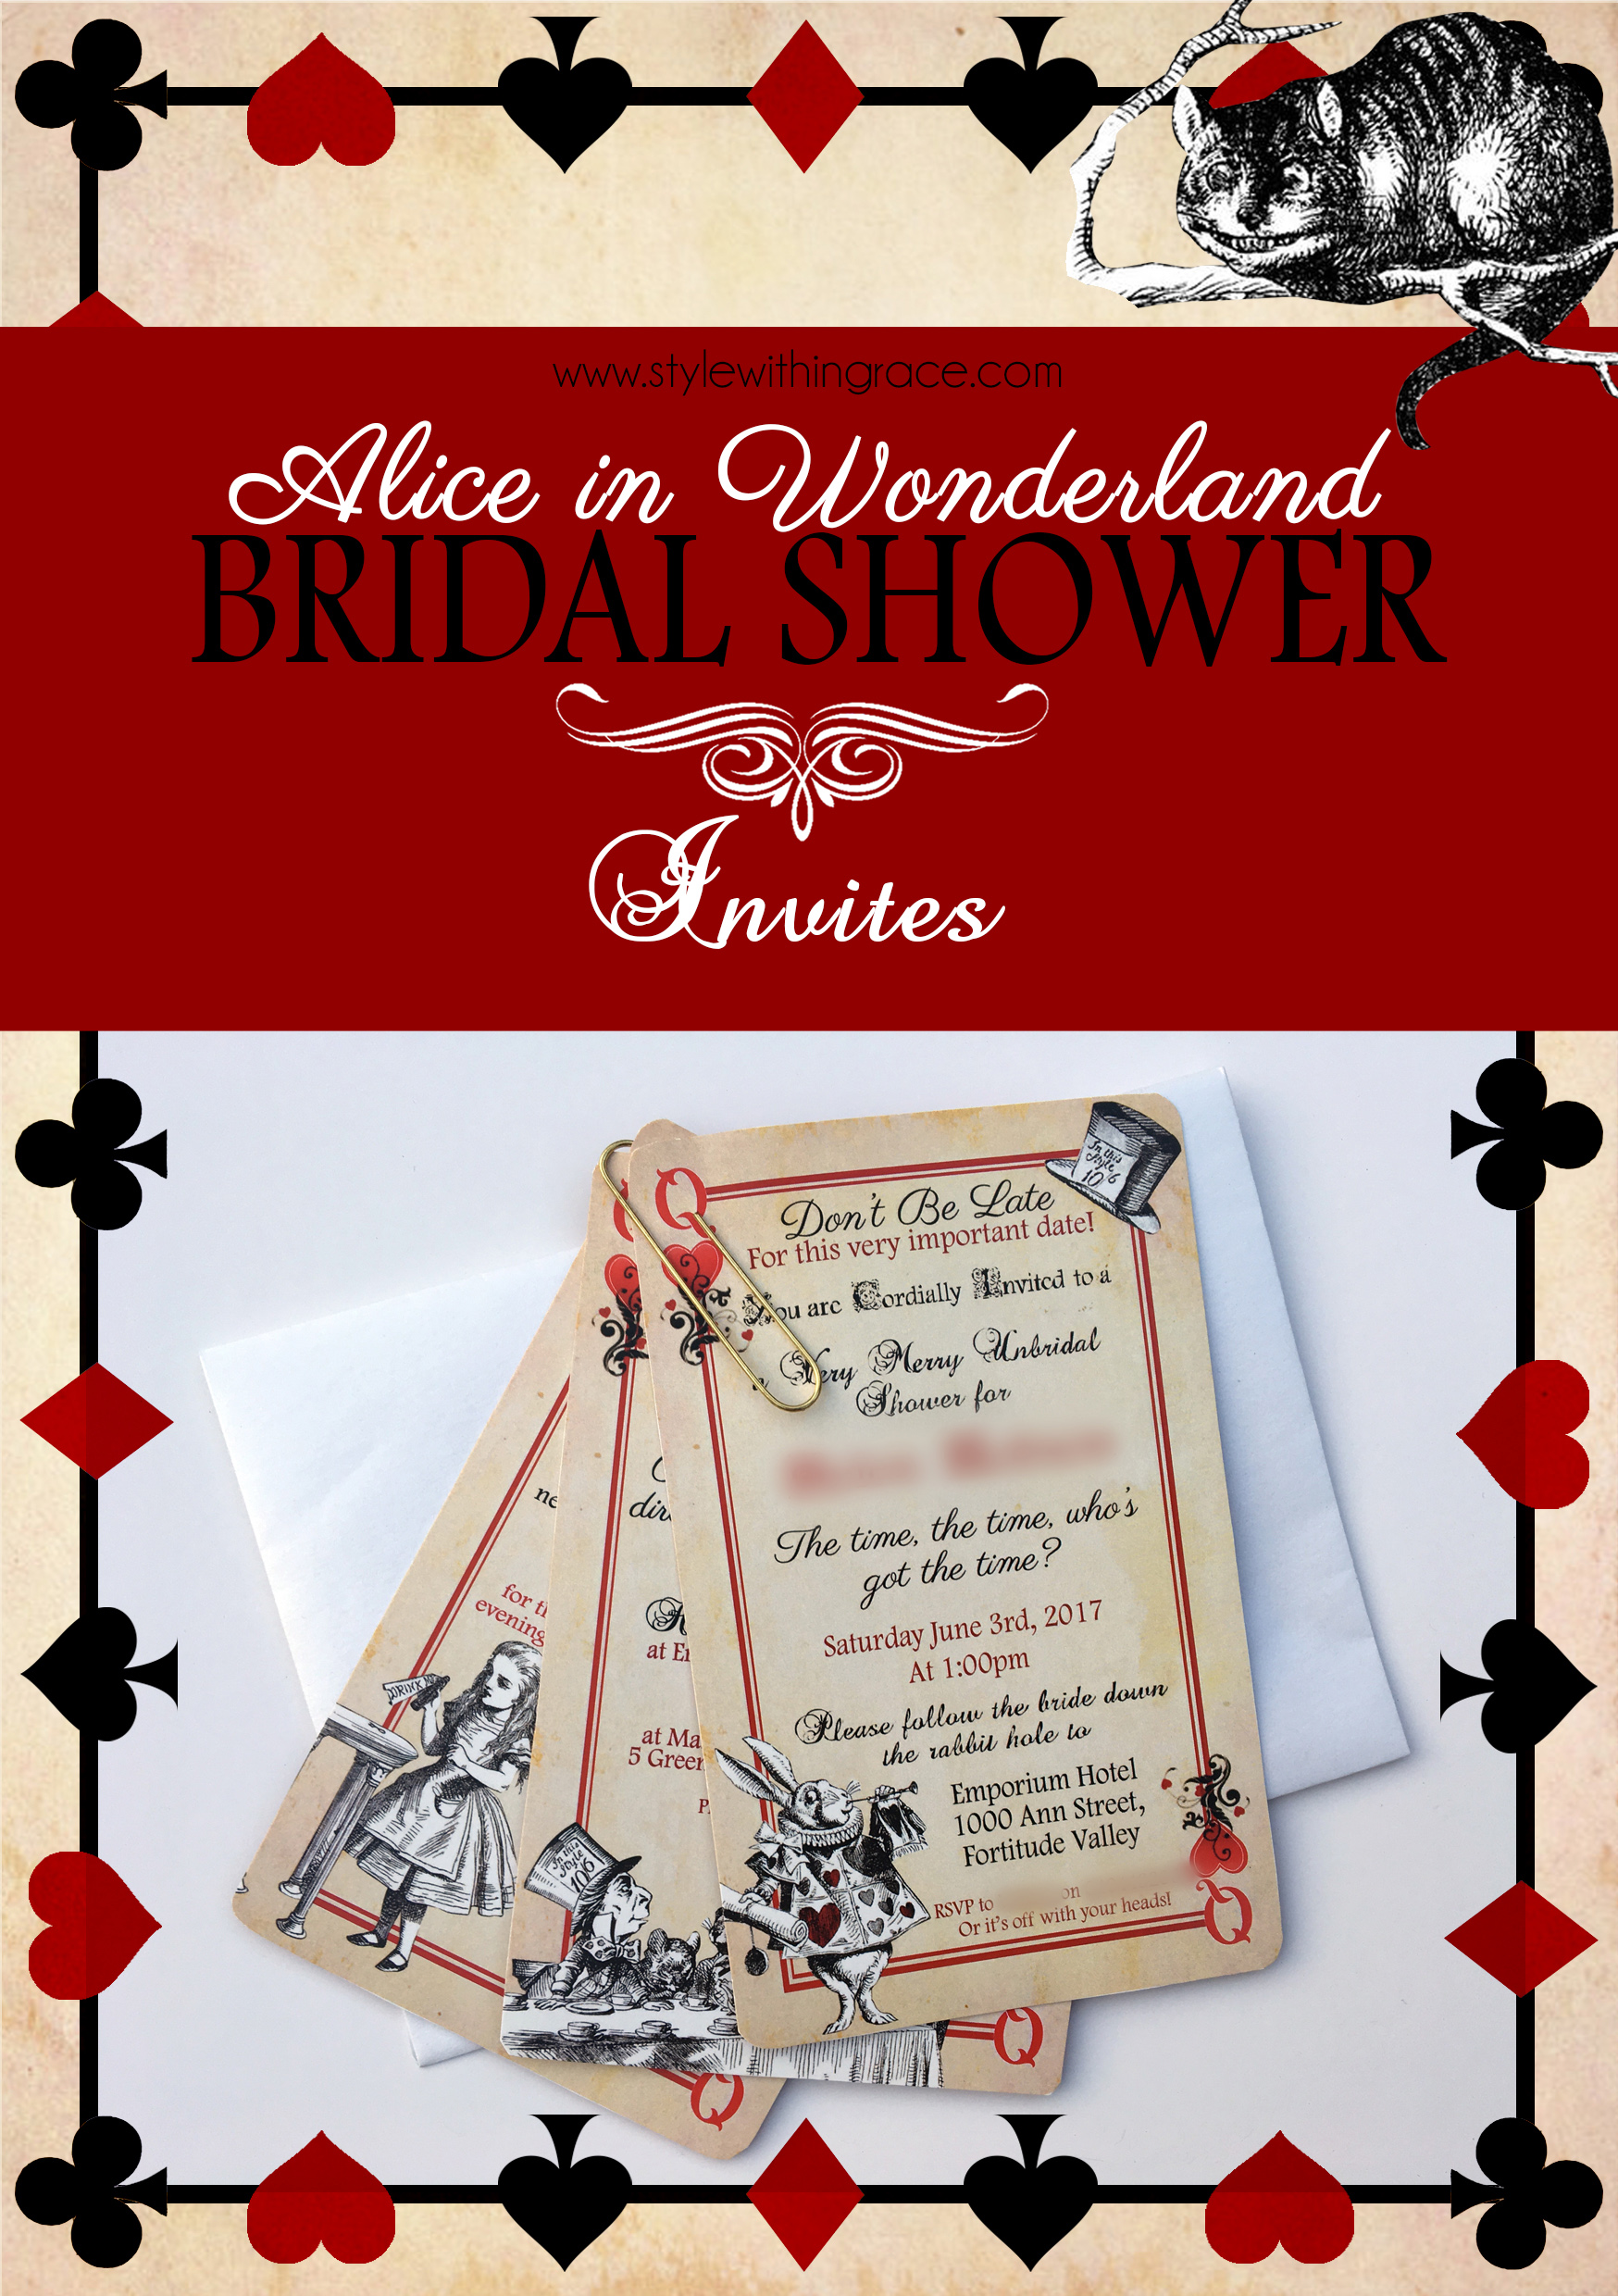 Alice In Wonderland Bridal Shower Invites - Free printable templates for an awesome playing card hens night invitation.